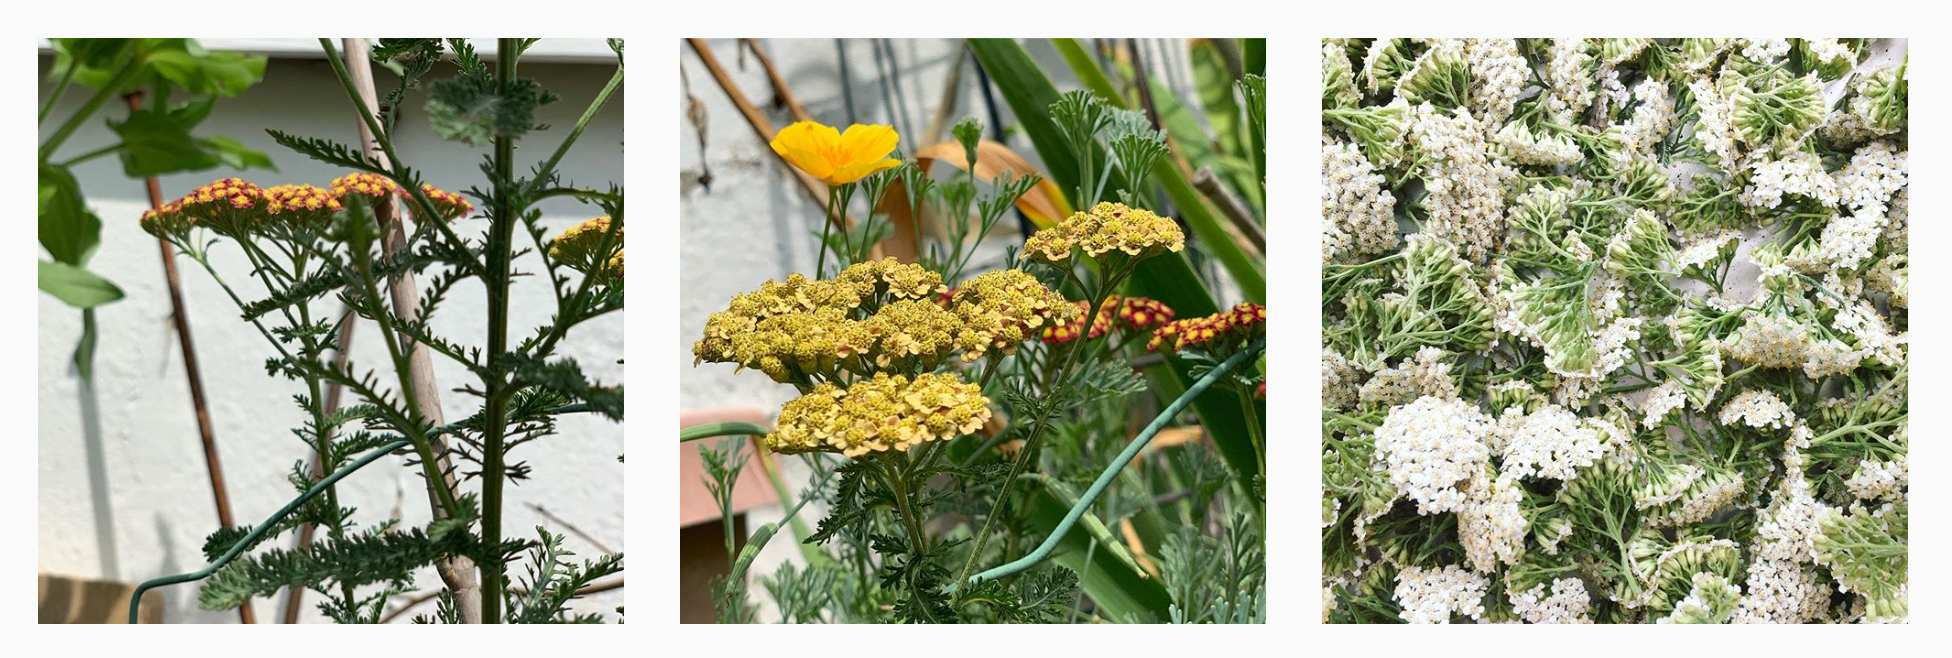 A row of different yarrow flowers